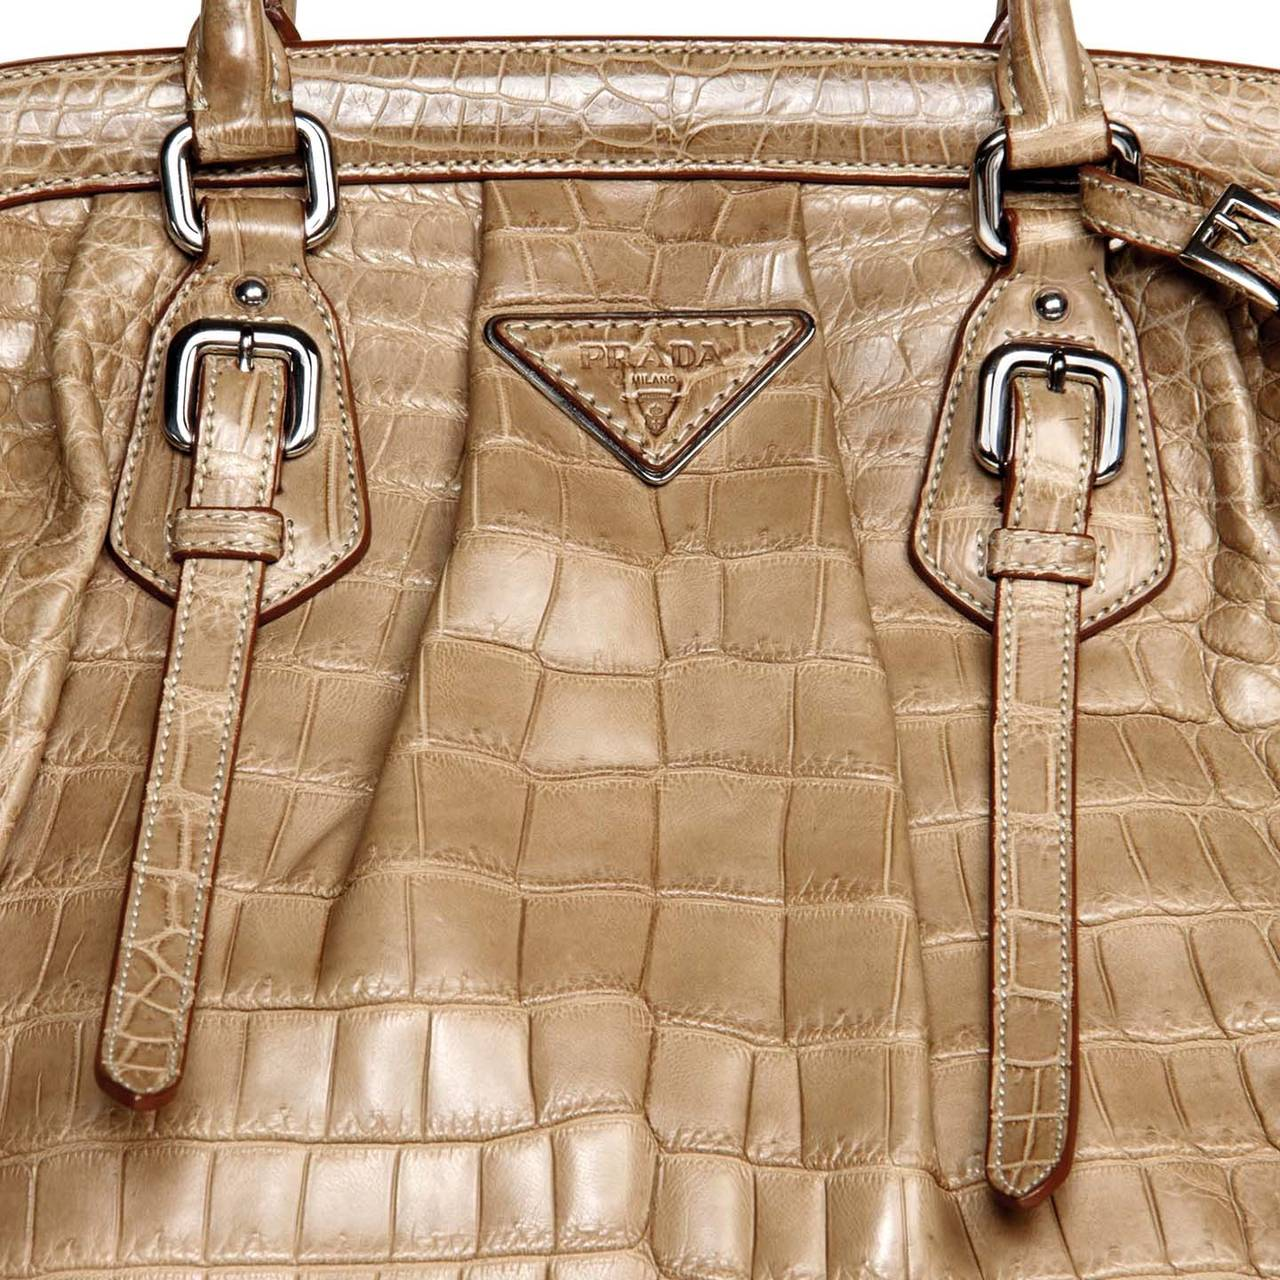 Light brown crocodile bag with a vintage classic design, style reference number BR 3511. Front and back are enriched by extra straps with little belt buckles and pleats that emphasize the round volume of the bag. The front of the bag is also